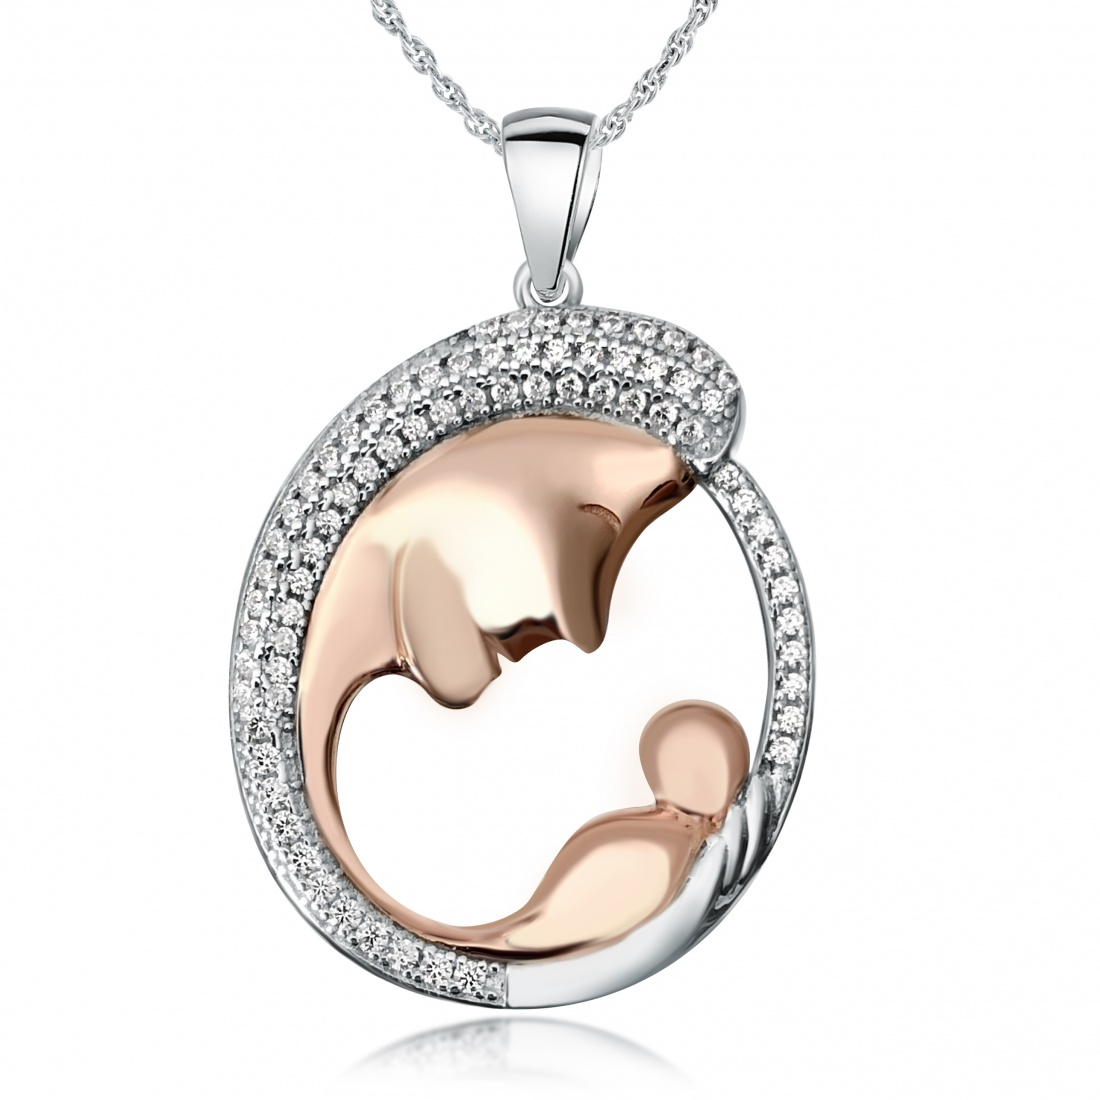 Mother and Child Necklace, Rose Gold Vermeil with Cubic Zirconia